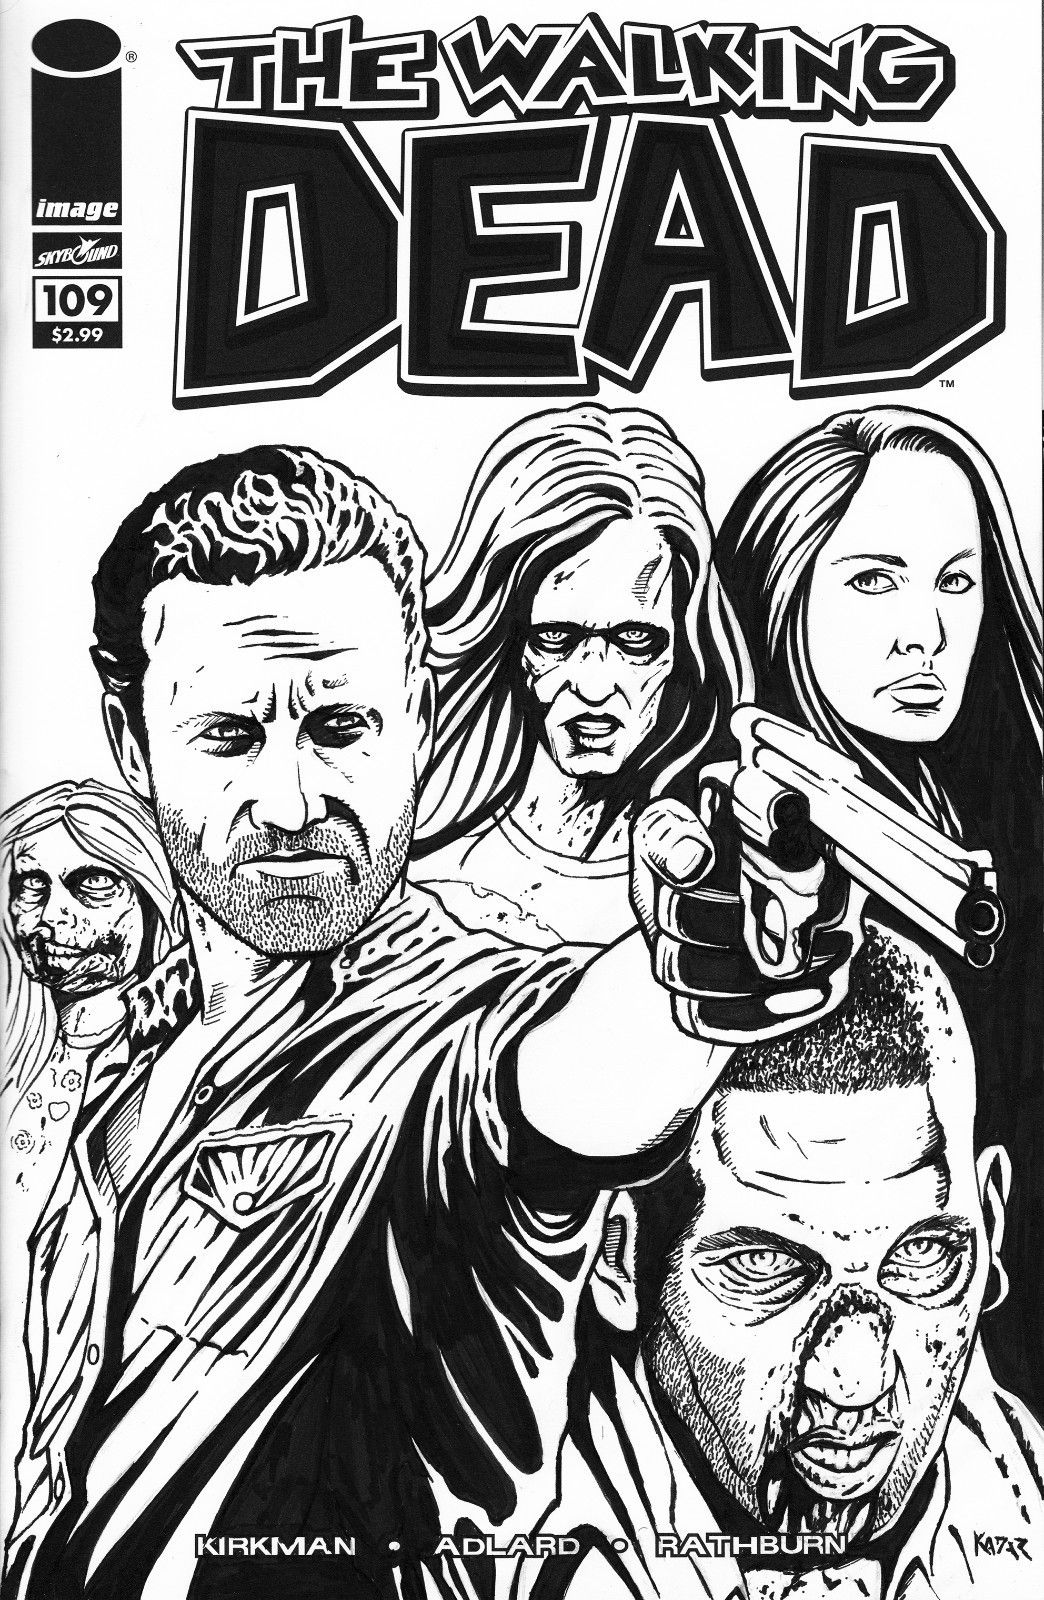 The coloring book of the dead - The Walking Dead Comic Book The Walking Dead Started As A Comic Book Series Created